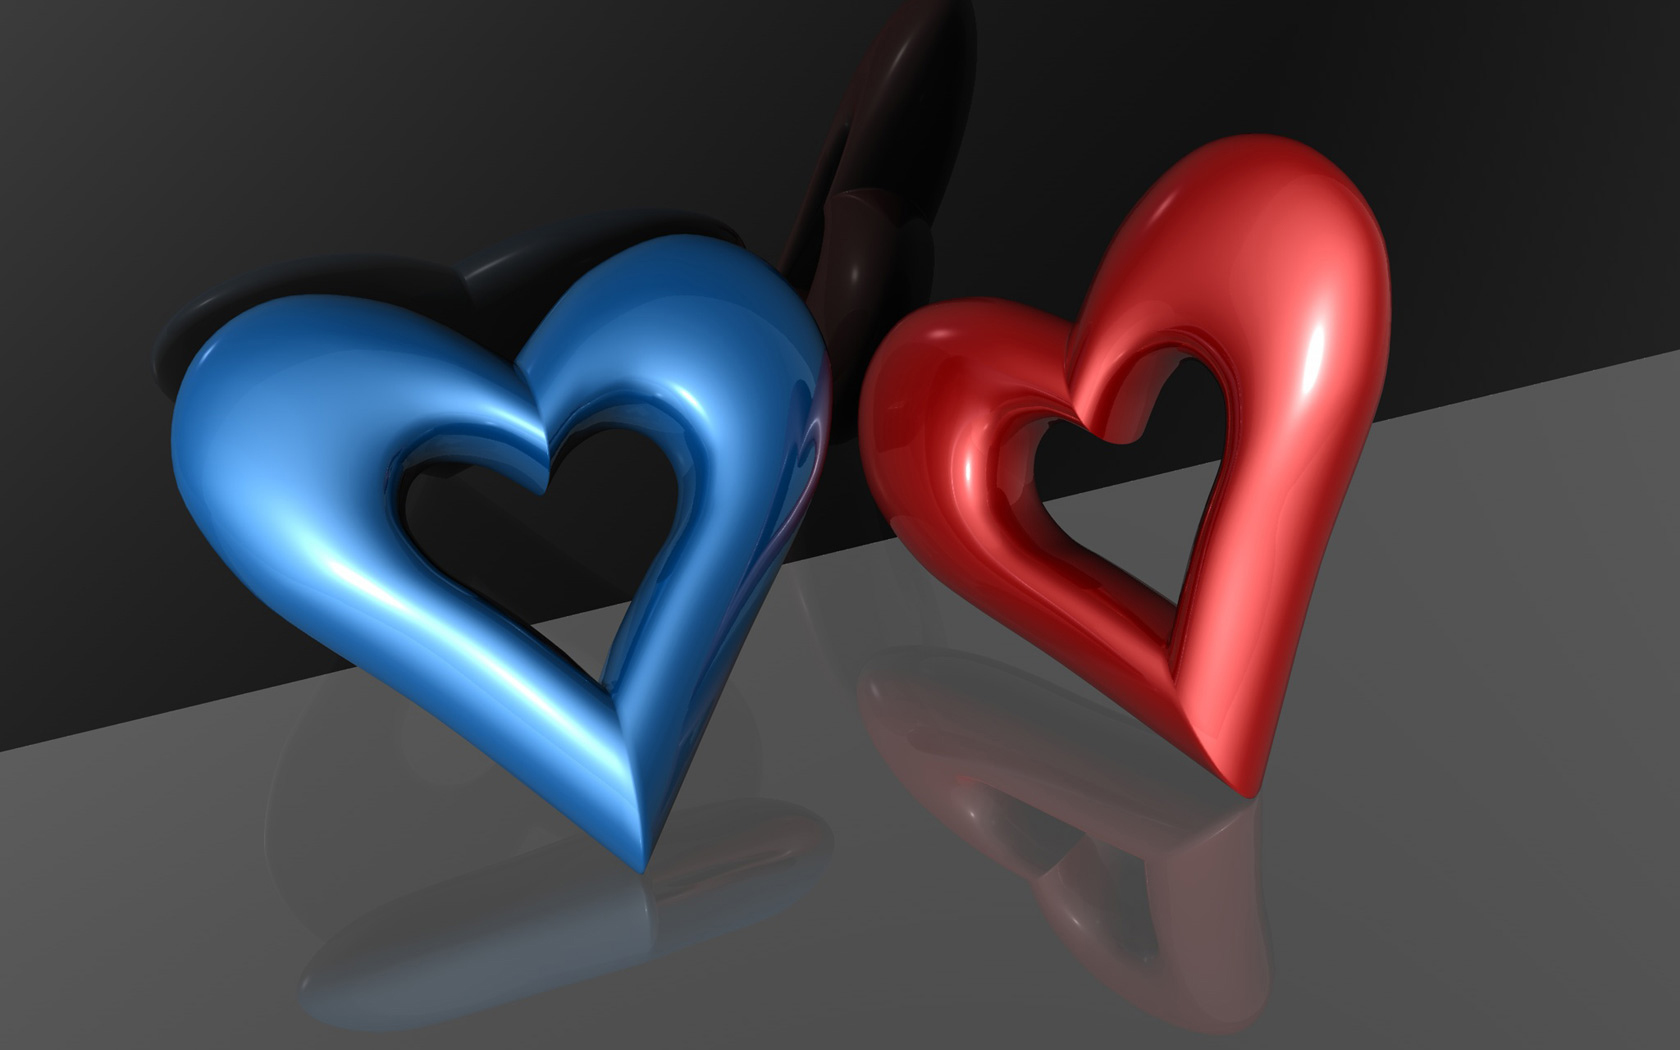 Blue and Red 3D Heart Wallpaper